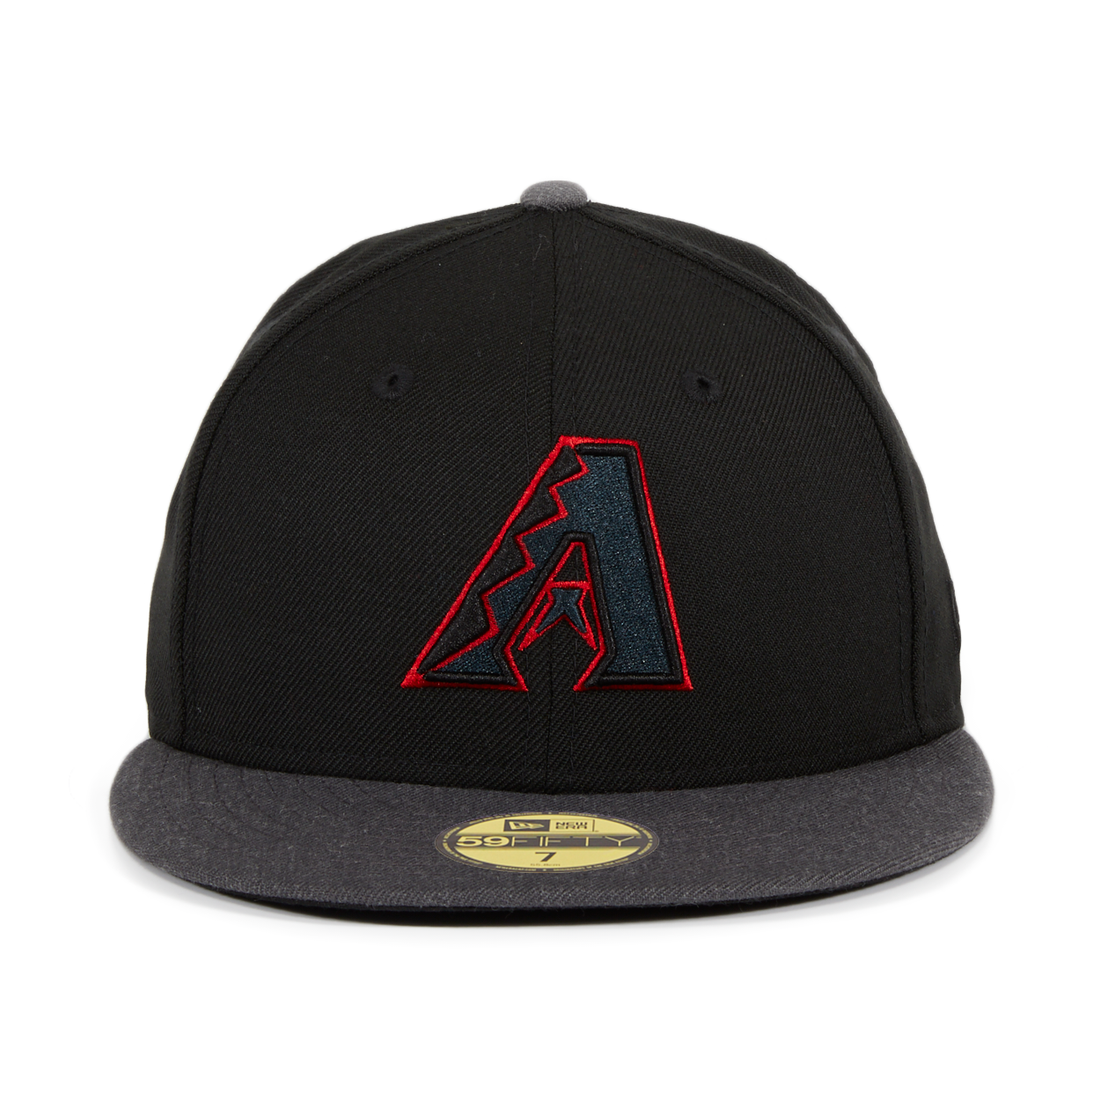 New Era 59Fifty Arizona Diamondbacks Fitted Hat - 2T Black a3a9415a781